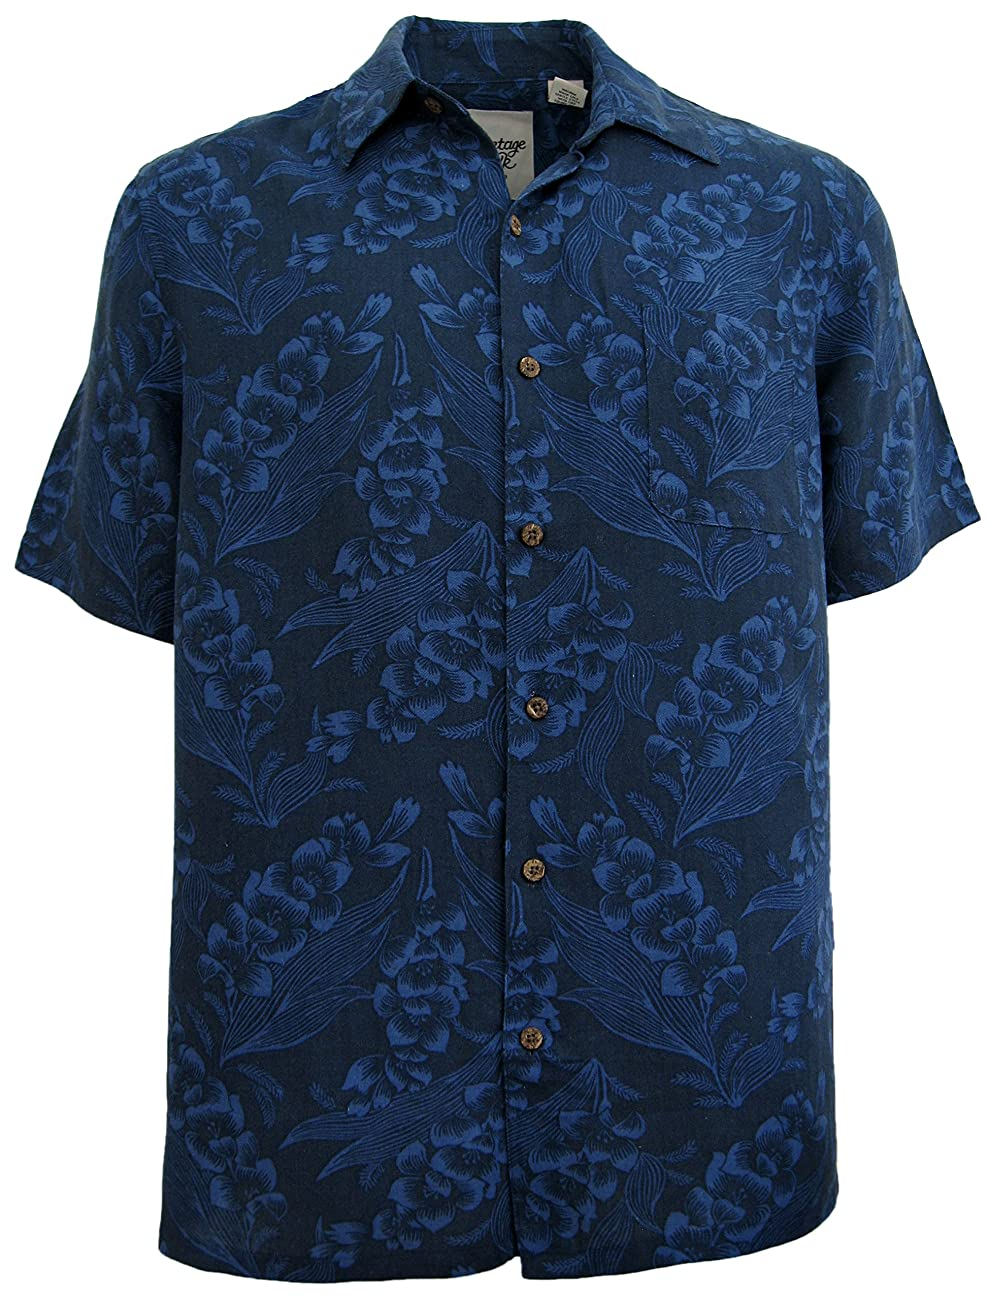 Mens Silk Linen Blend Hawaiian Camp Shirt Navy Blue Floral Casual 0